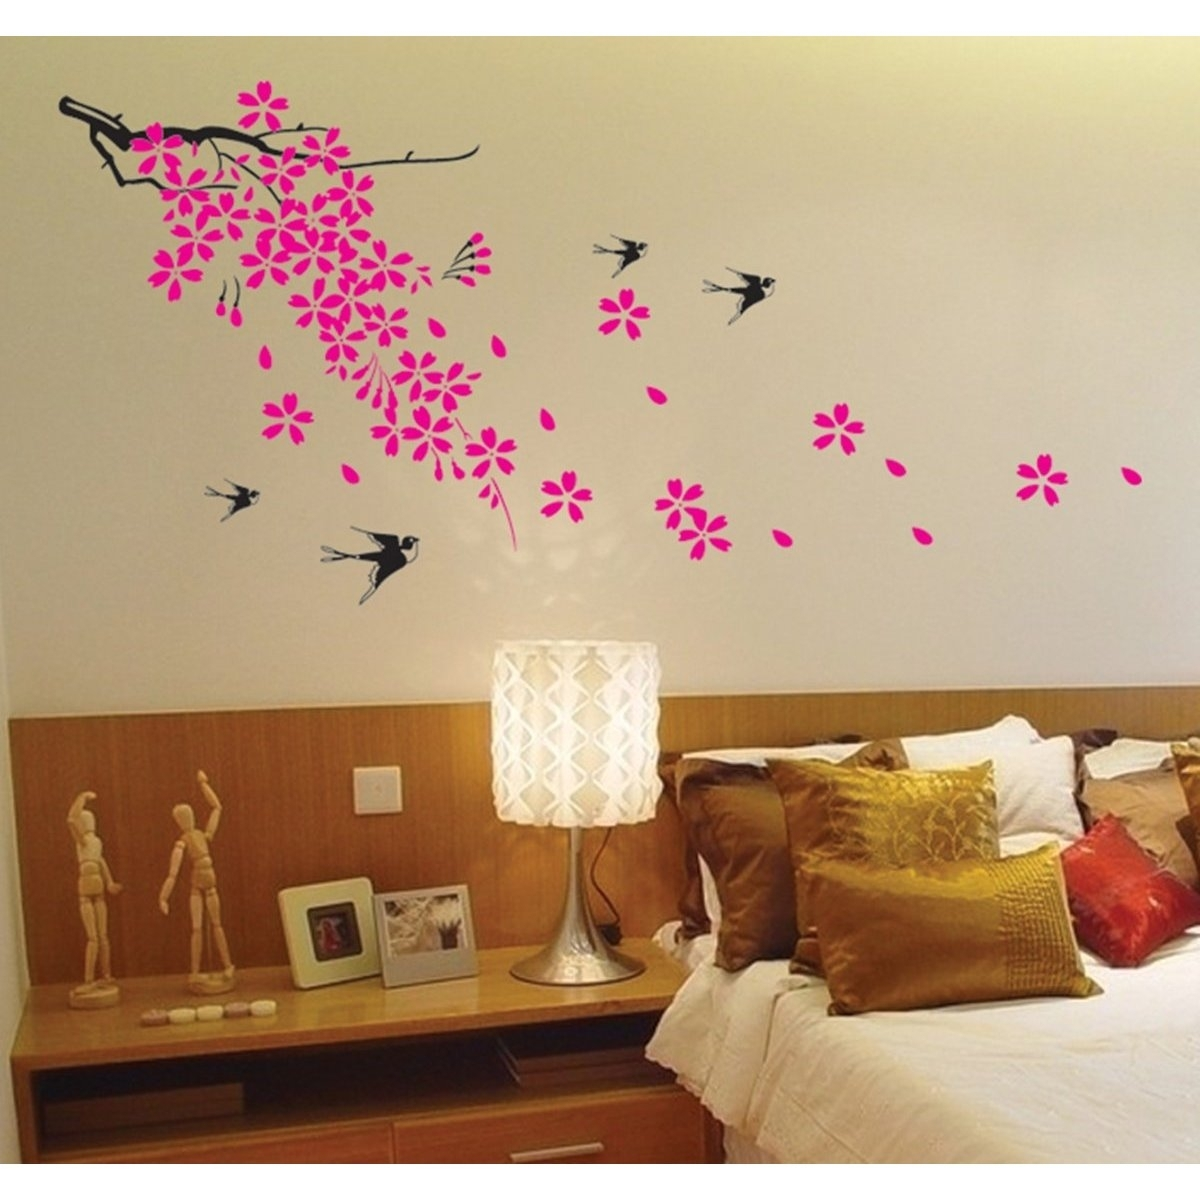 Decoration Art For House Decoration Small Mirror Wall Art Household inside Home Decor Wall Art (Image 6 of 20)